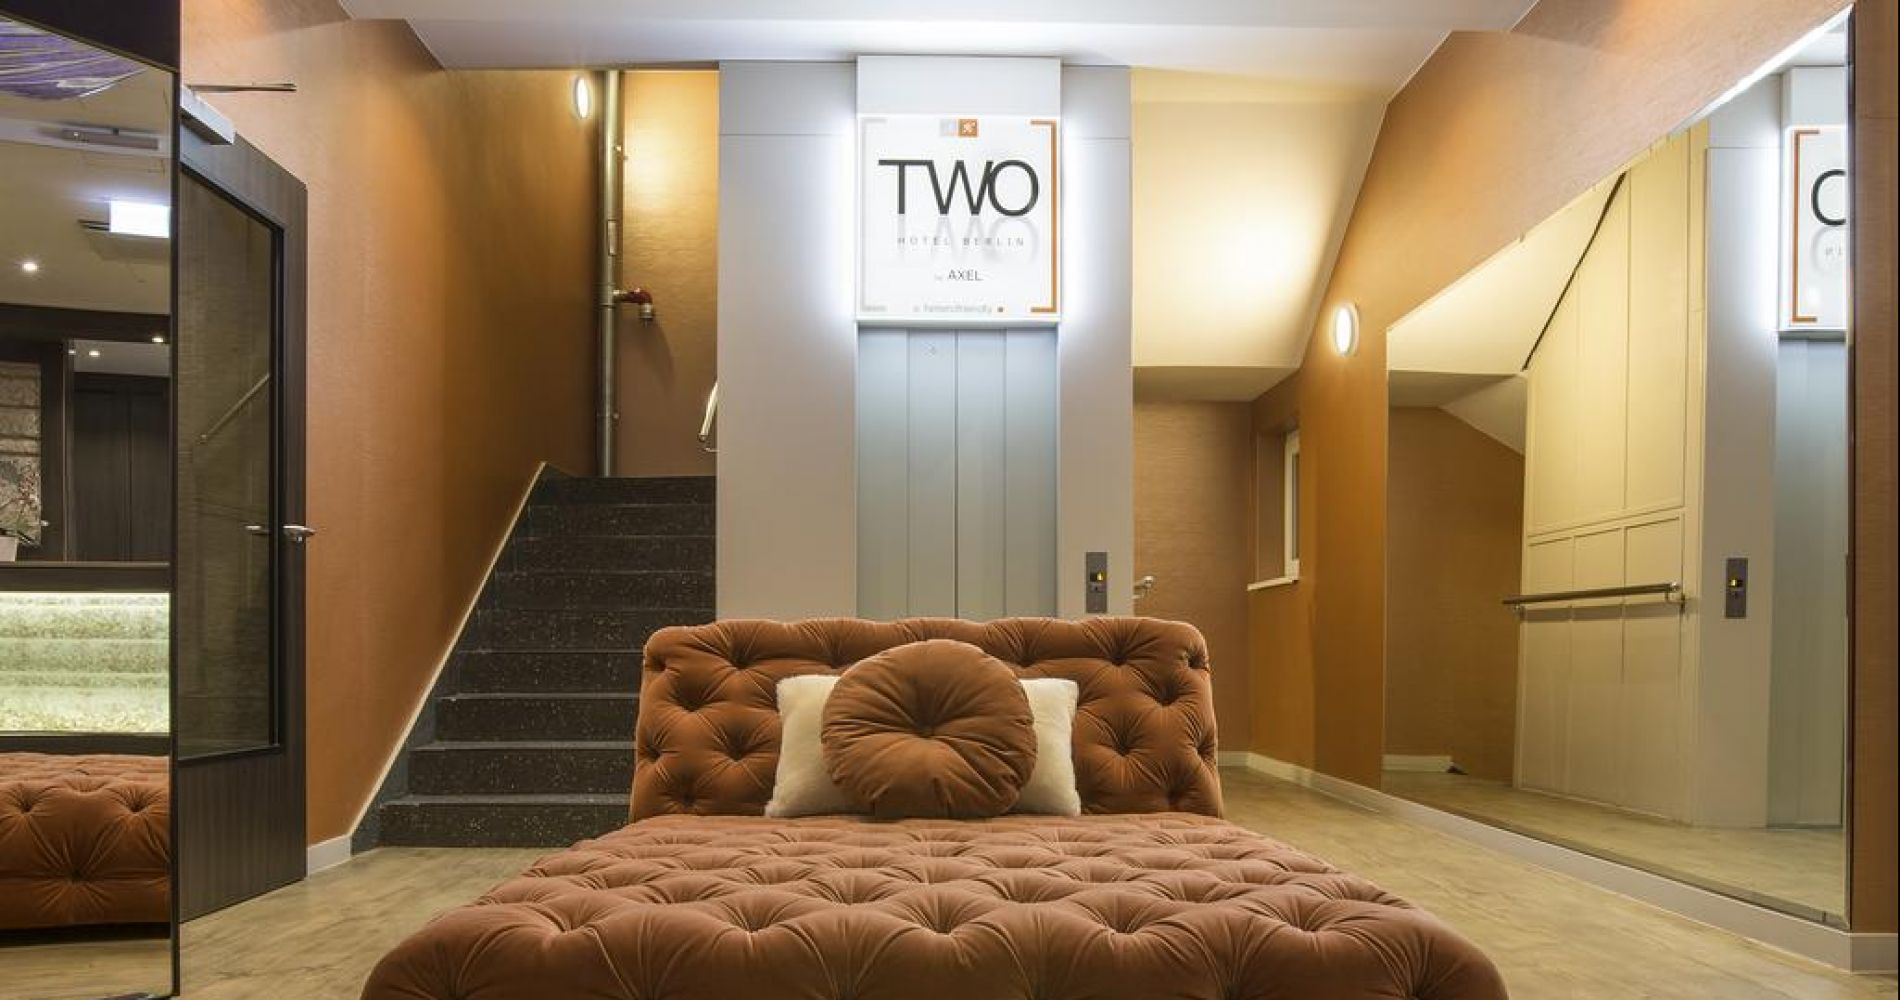 TWO Hotel Berlin by Axel - Adults Only